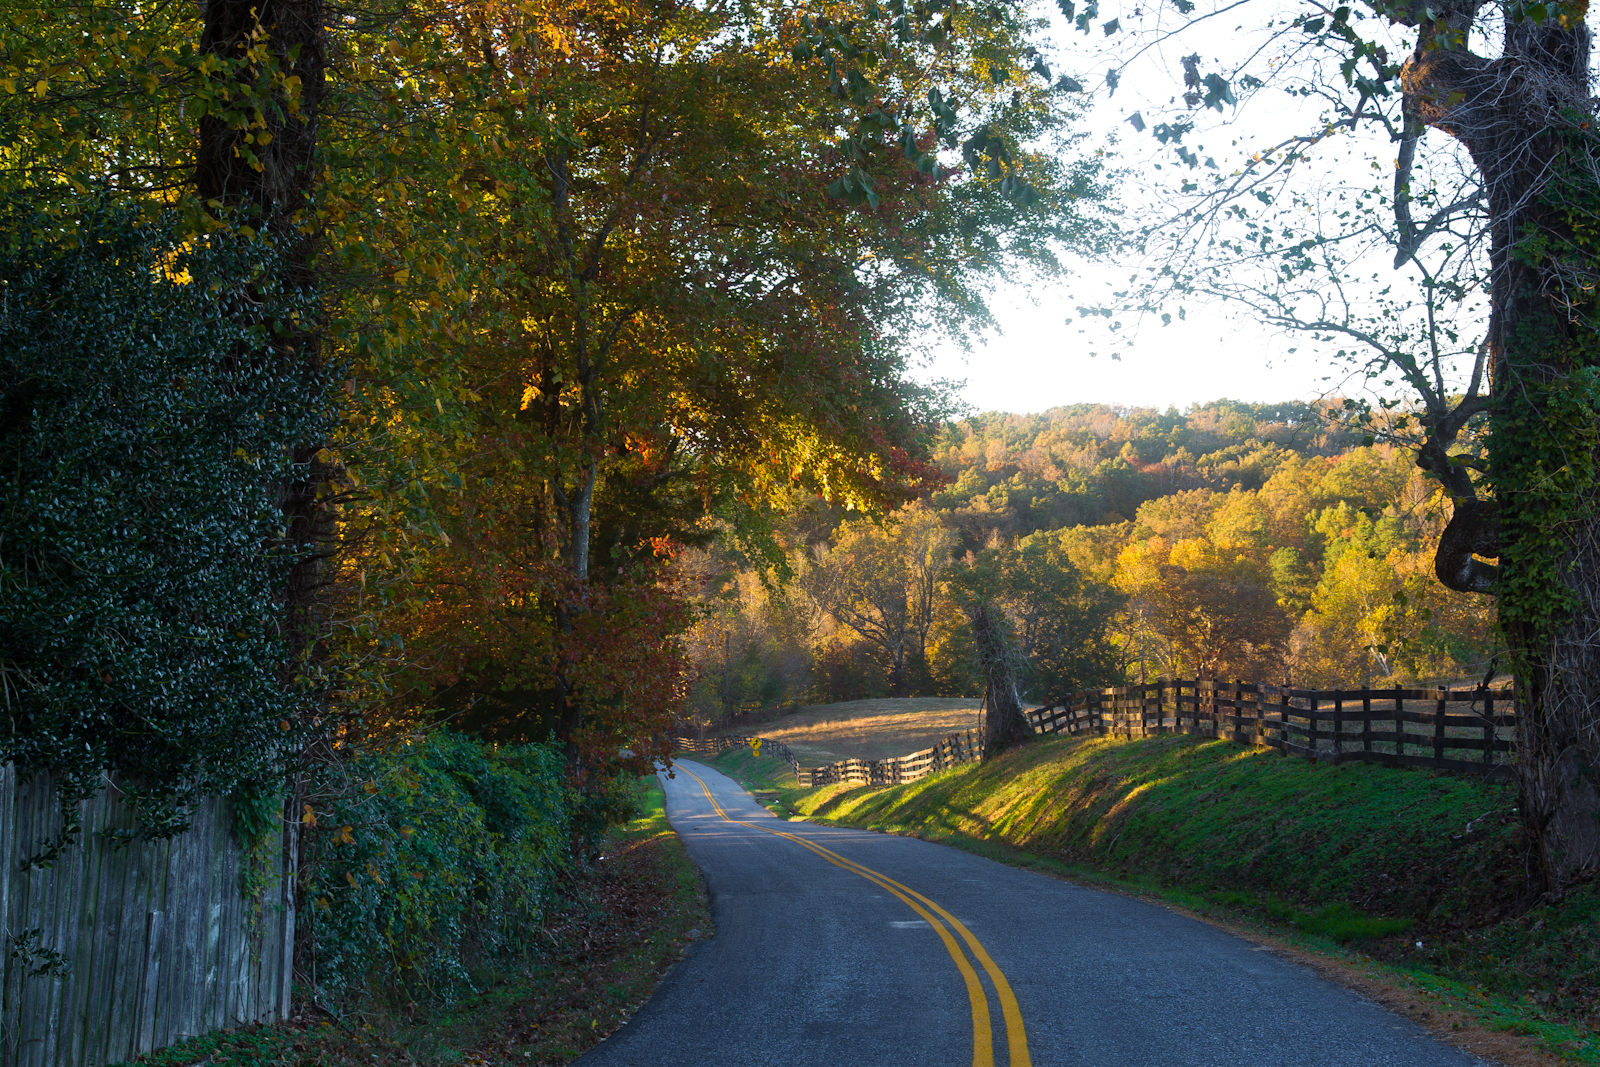 Autumn-country-backroad-50-of-1